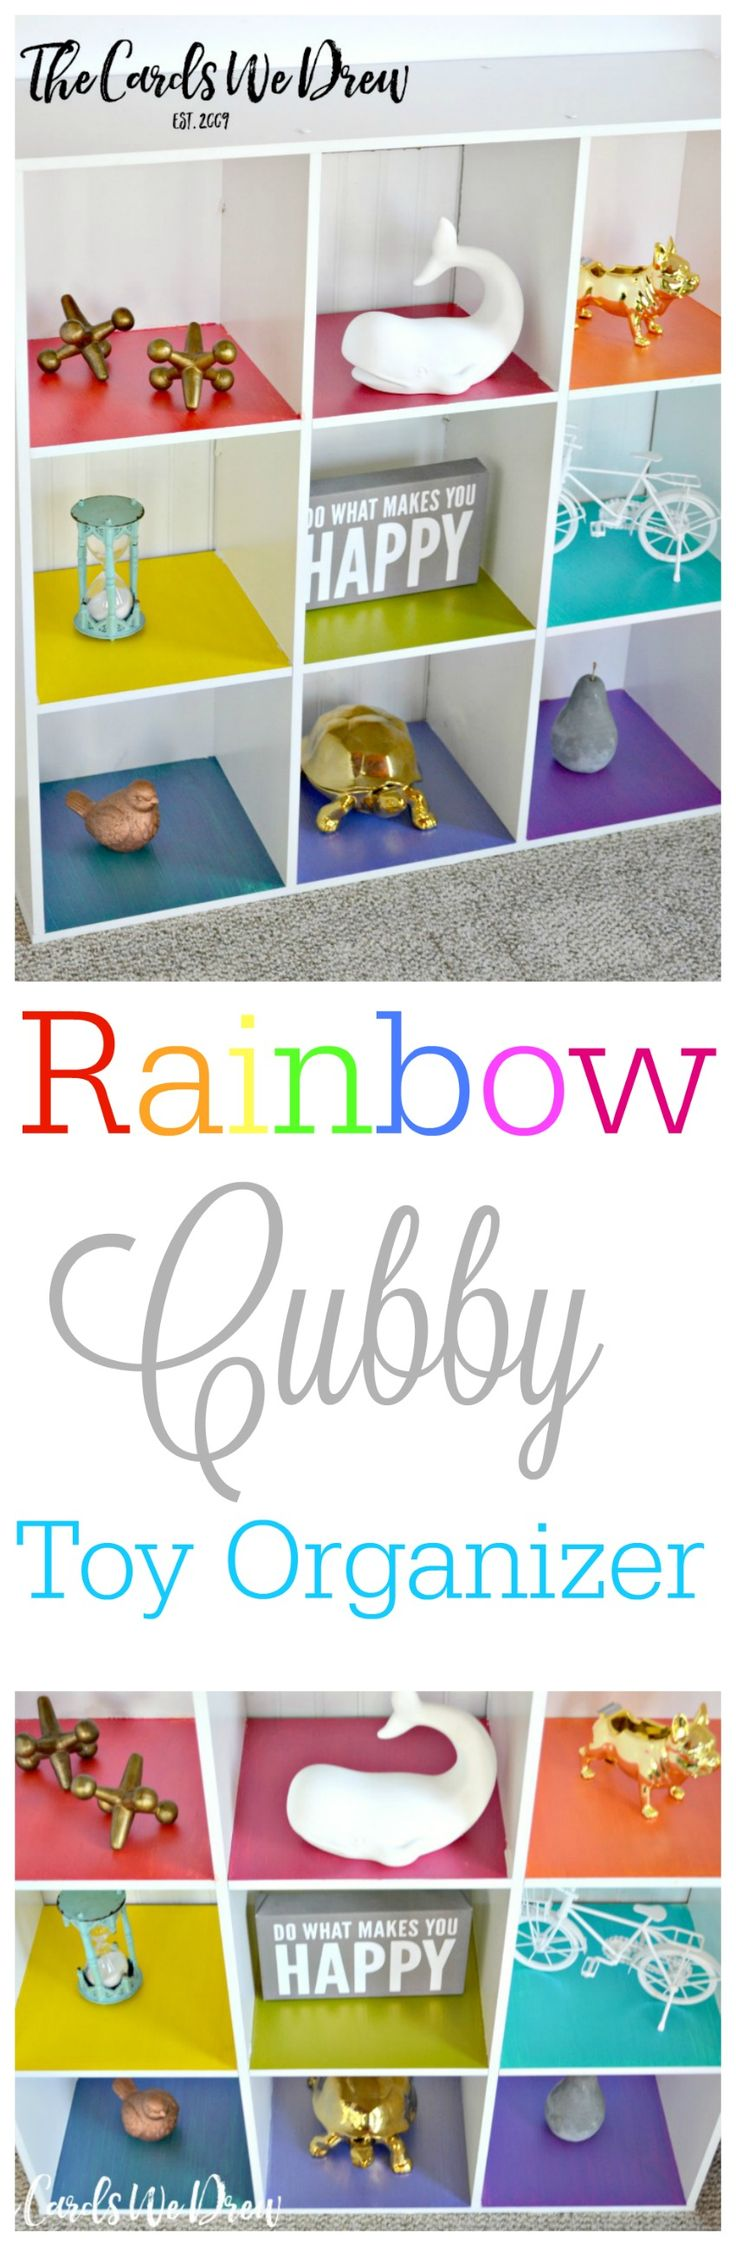 Spruce up the traditional kids toy cubbies with this fun Rainbow Cubby Toy Organizer from The Cards We Drew. #PlaidCreators #sponsored